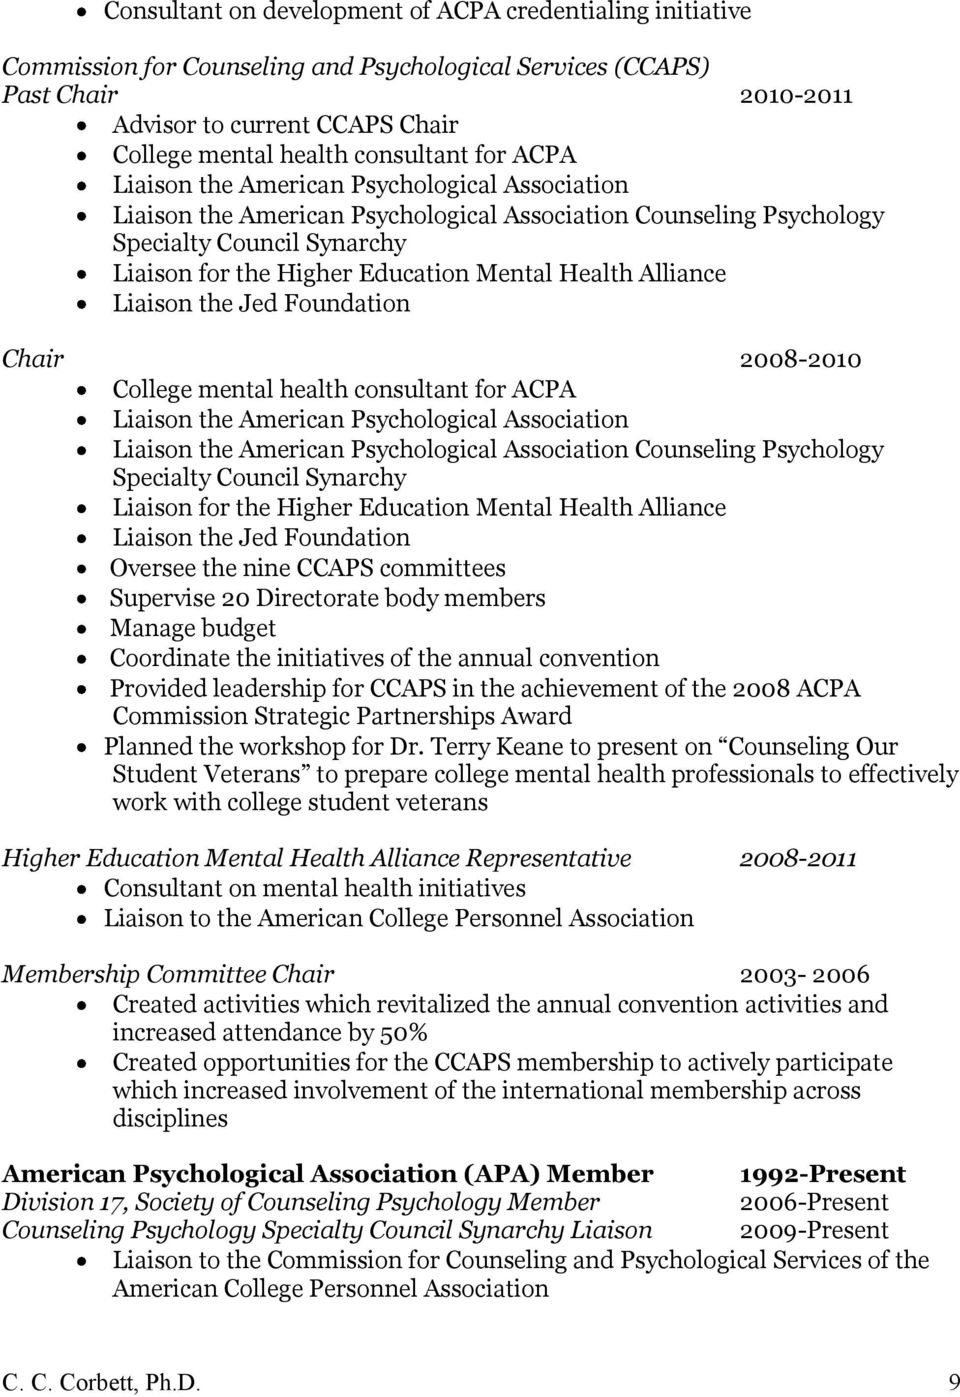 Mental Health Alliance Liaison the Jed Foundation Chair 2008-2010 College mental health  Mental Health Alliance Liaison the Jed Foundation Oversee the nine CCAPS committees Supervise 20 Directorate